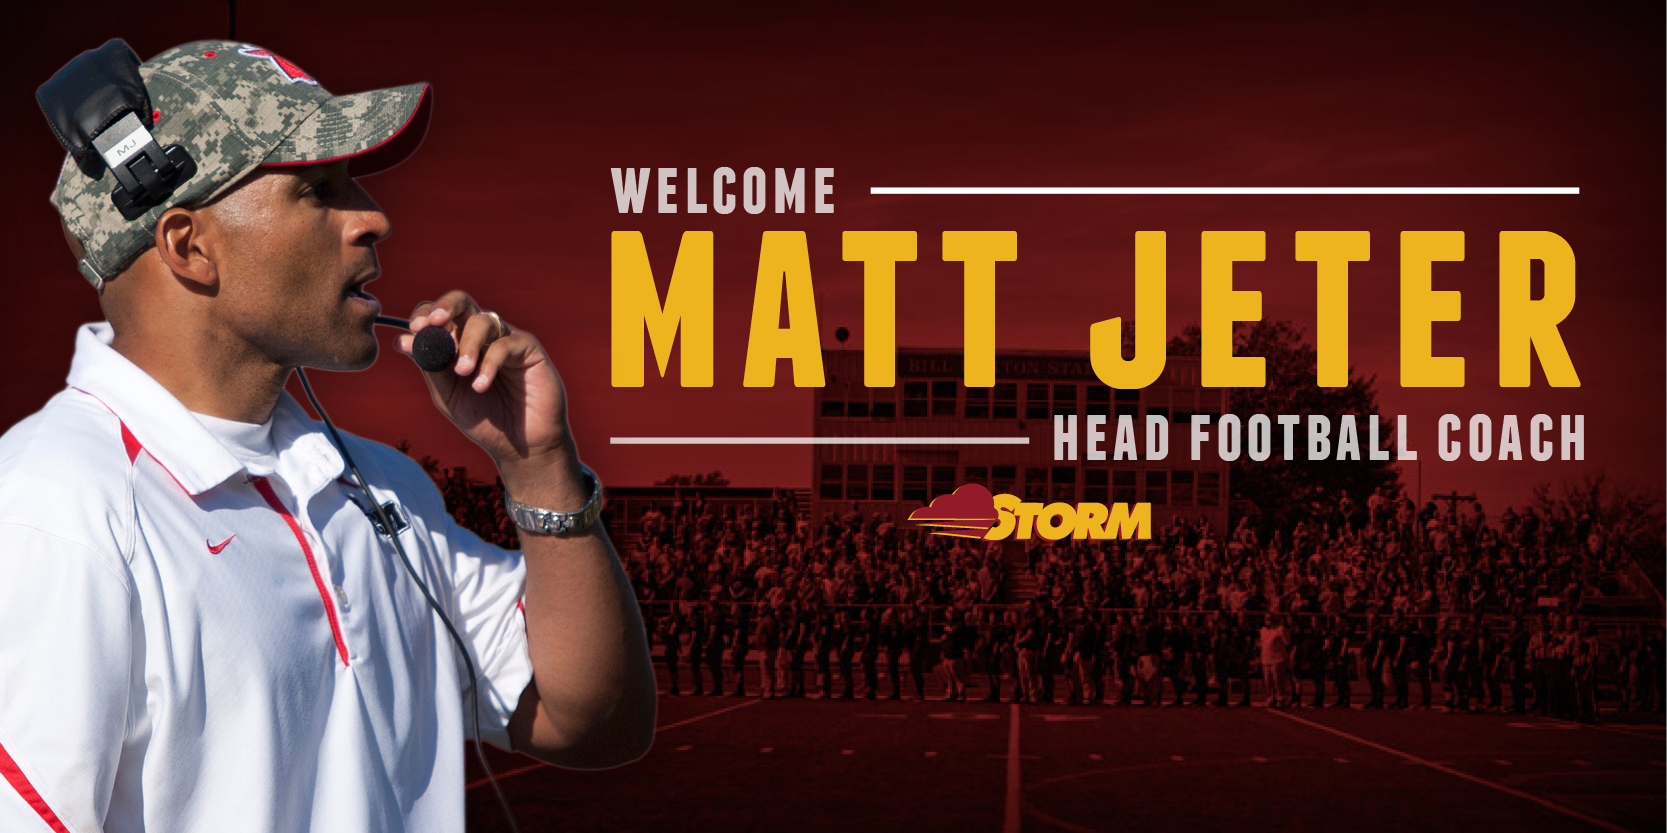 Matt Jeter hired as head football coach